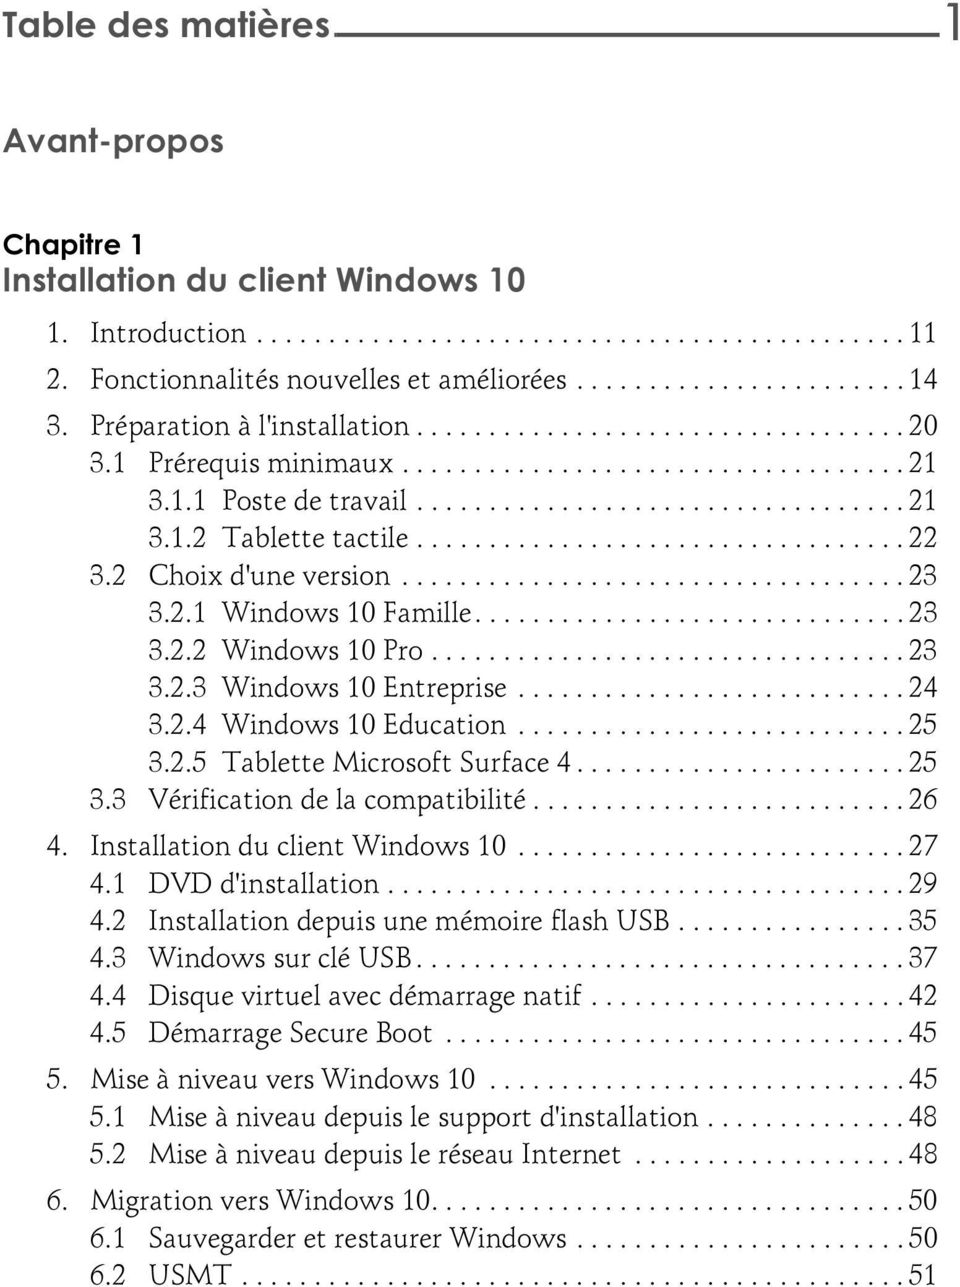 ................................. 22 3.2 Choix d'une version................................... 23 3.2.1 Windows 10 Famille.............................. 23 3.2.2 Windows 10 Pro................................. 23 3.2.3 Windows 10 Entreprise.